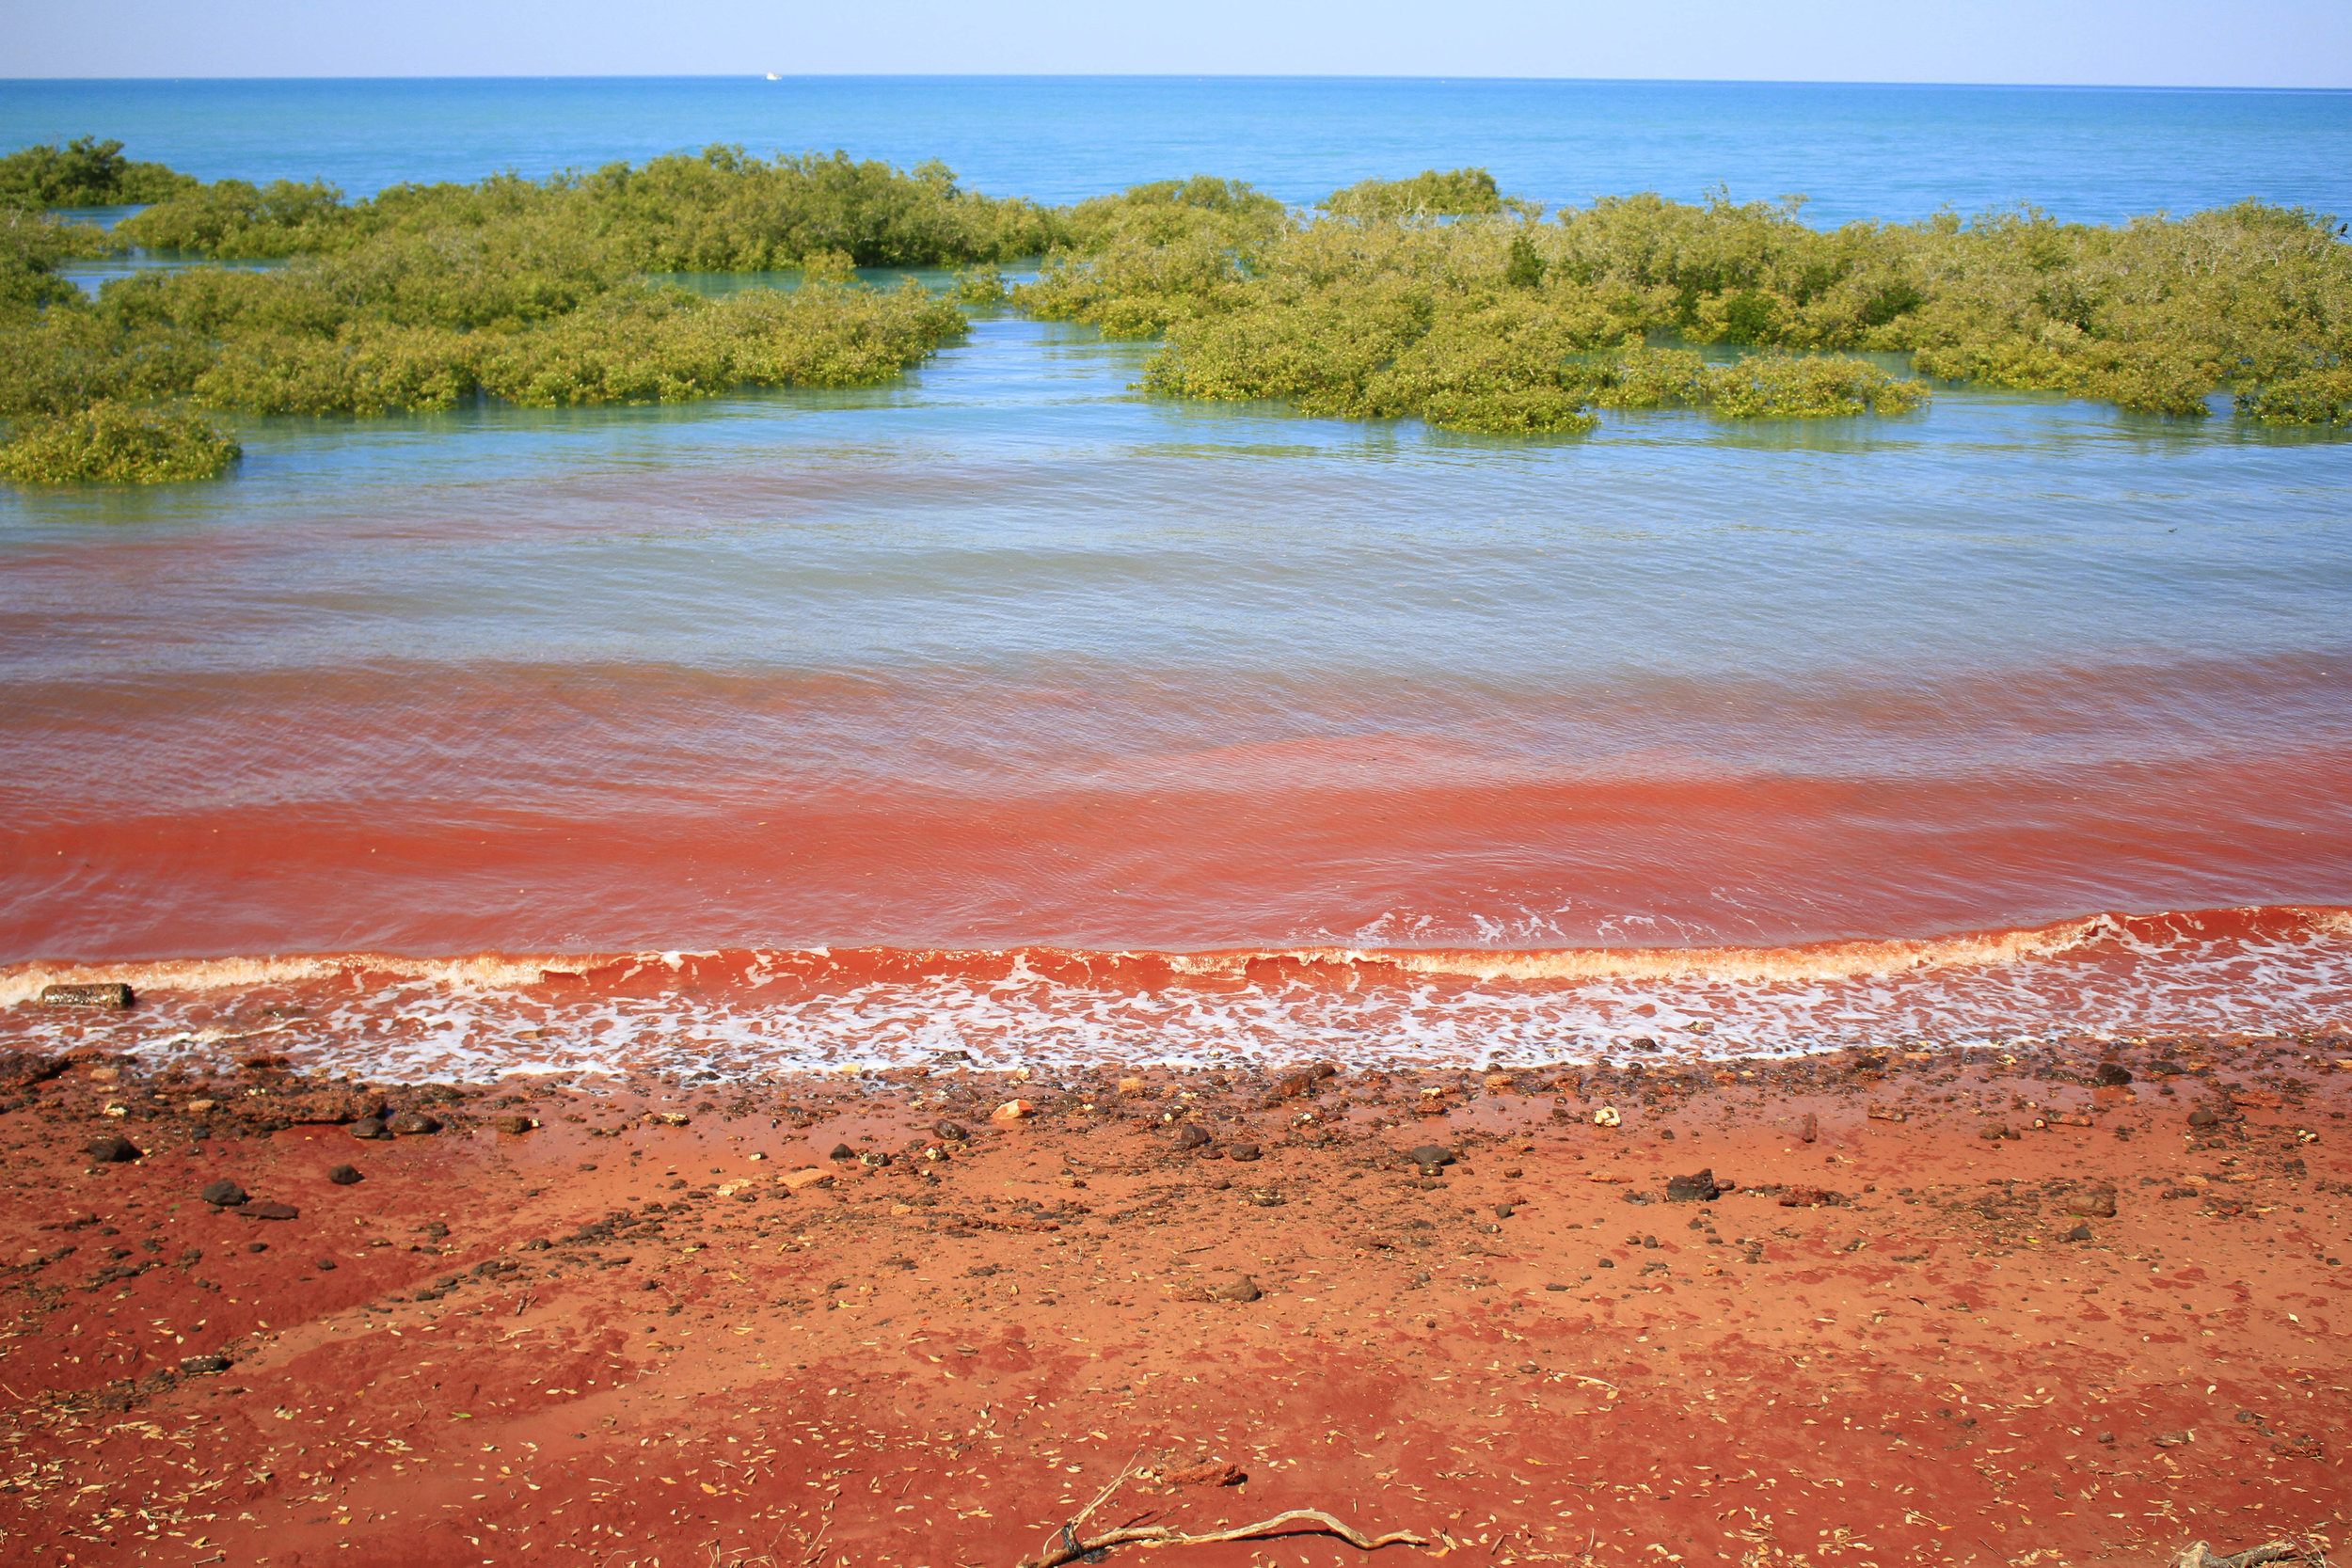 Red 'pindan' soil leaching into the sea on high tide